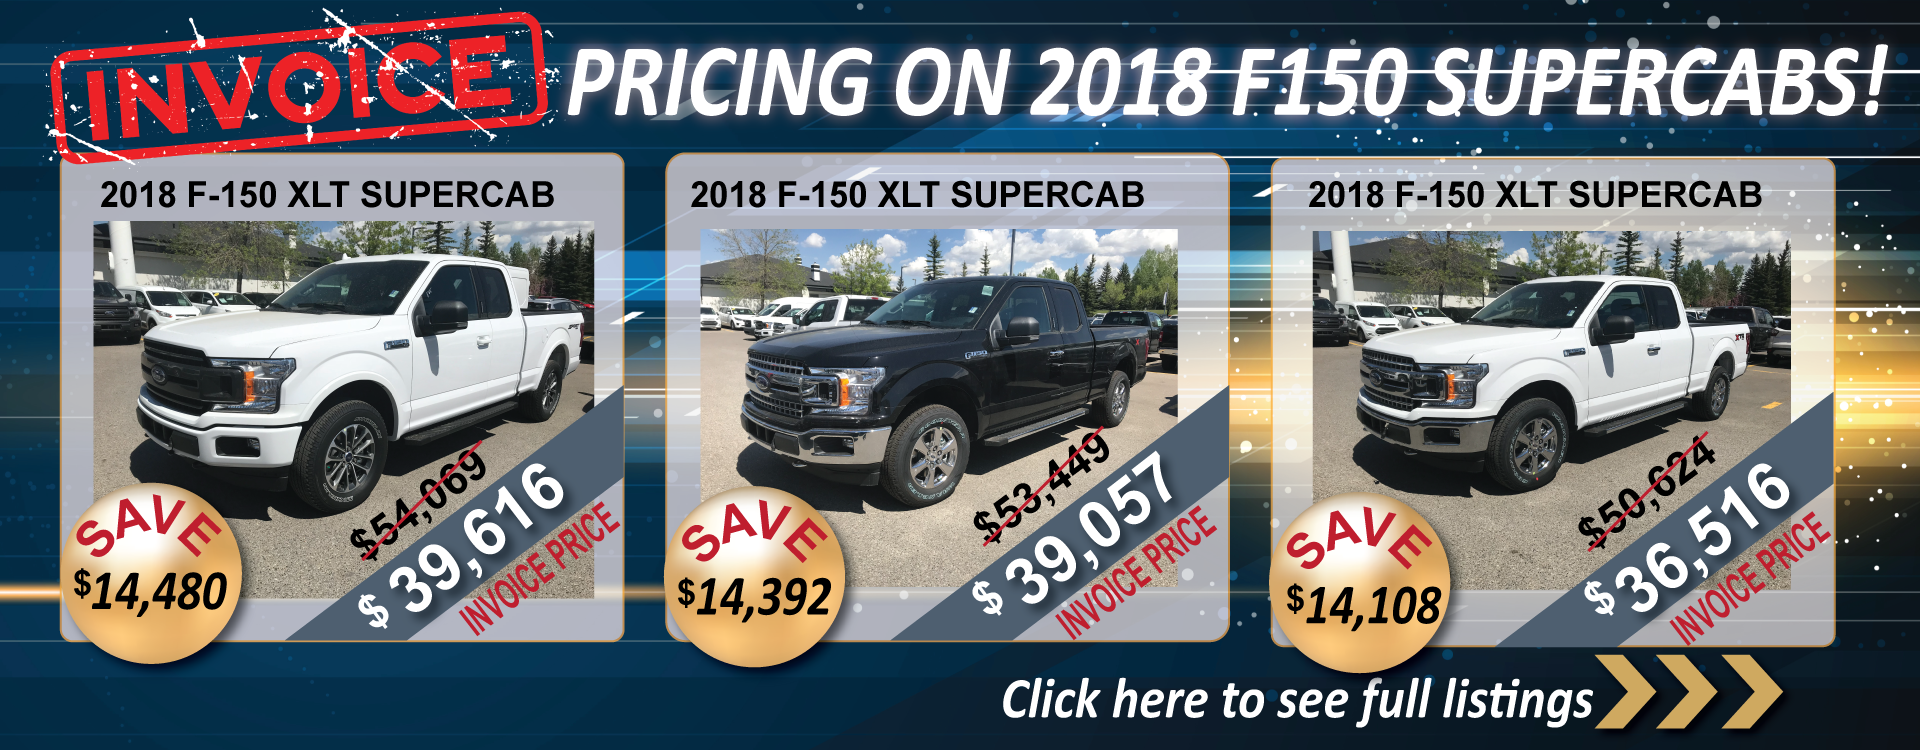 INVOICE PRICING DEALS ON 2018 F150 SUPERCABS